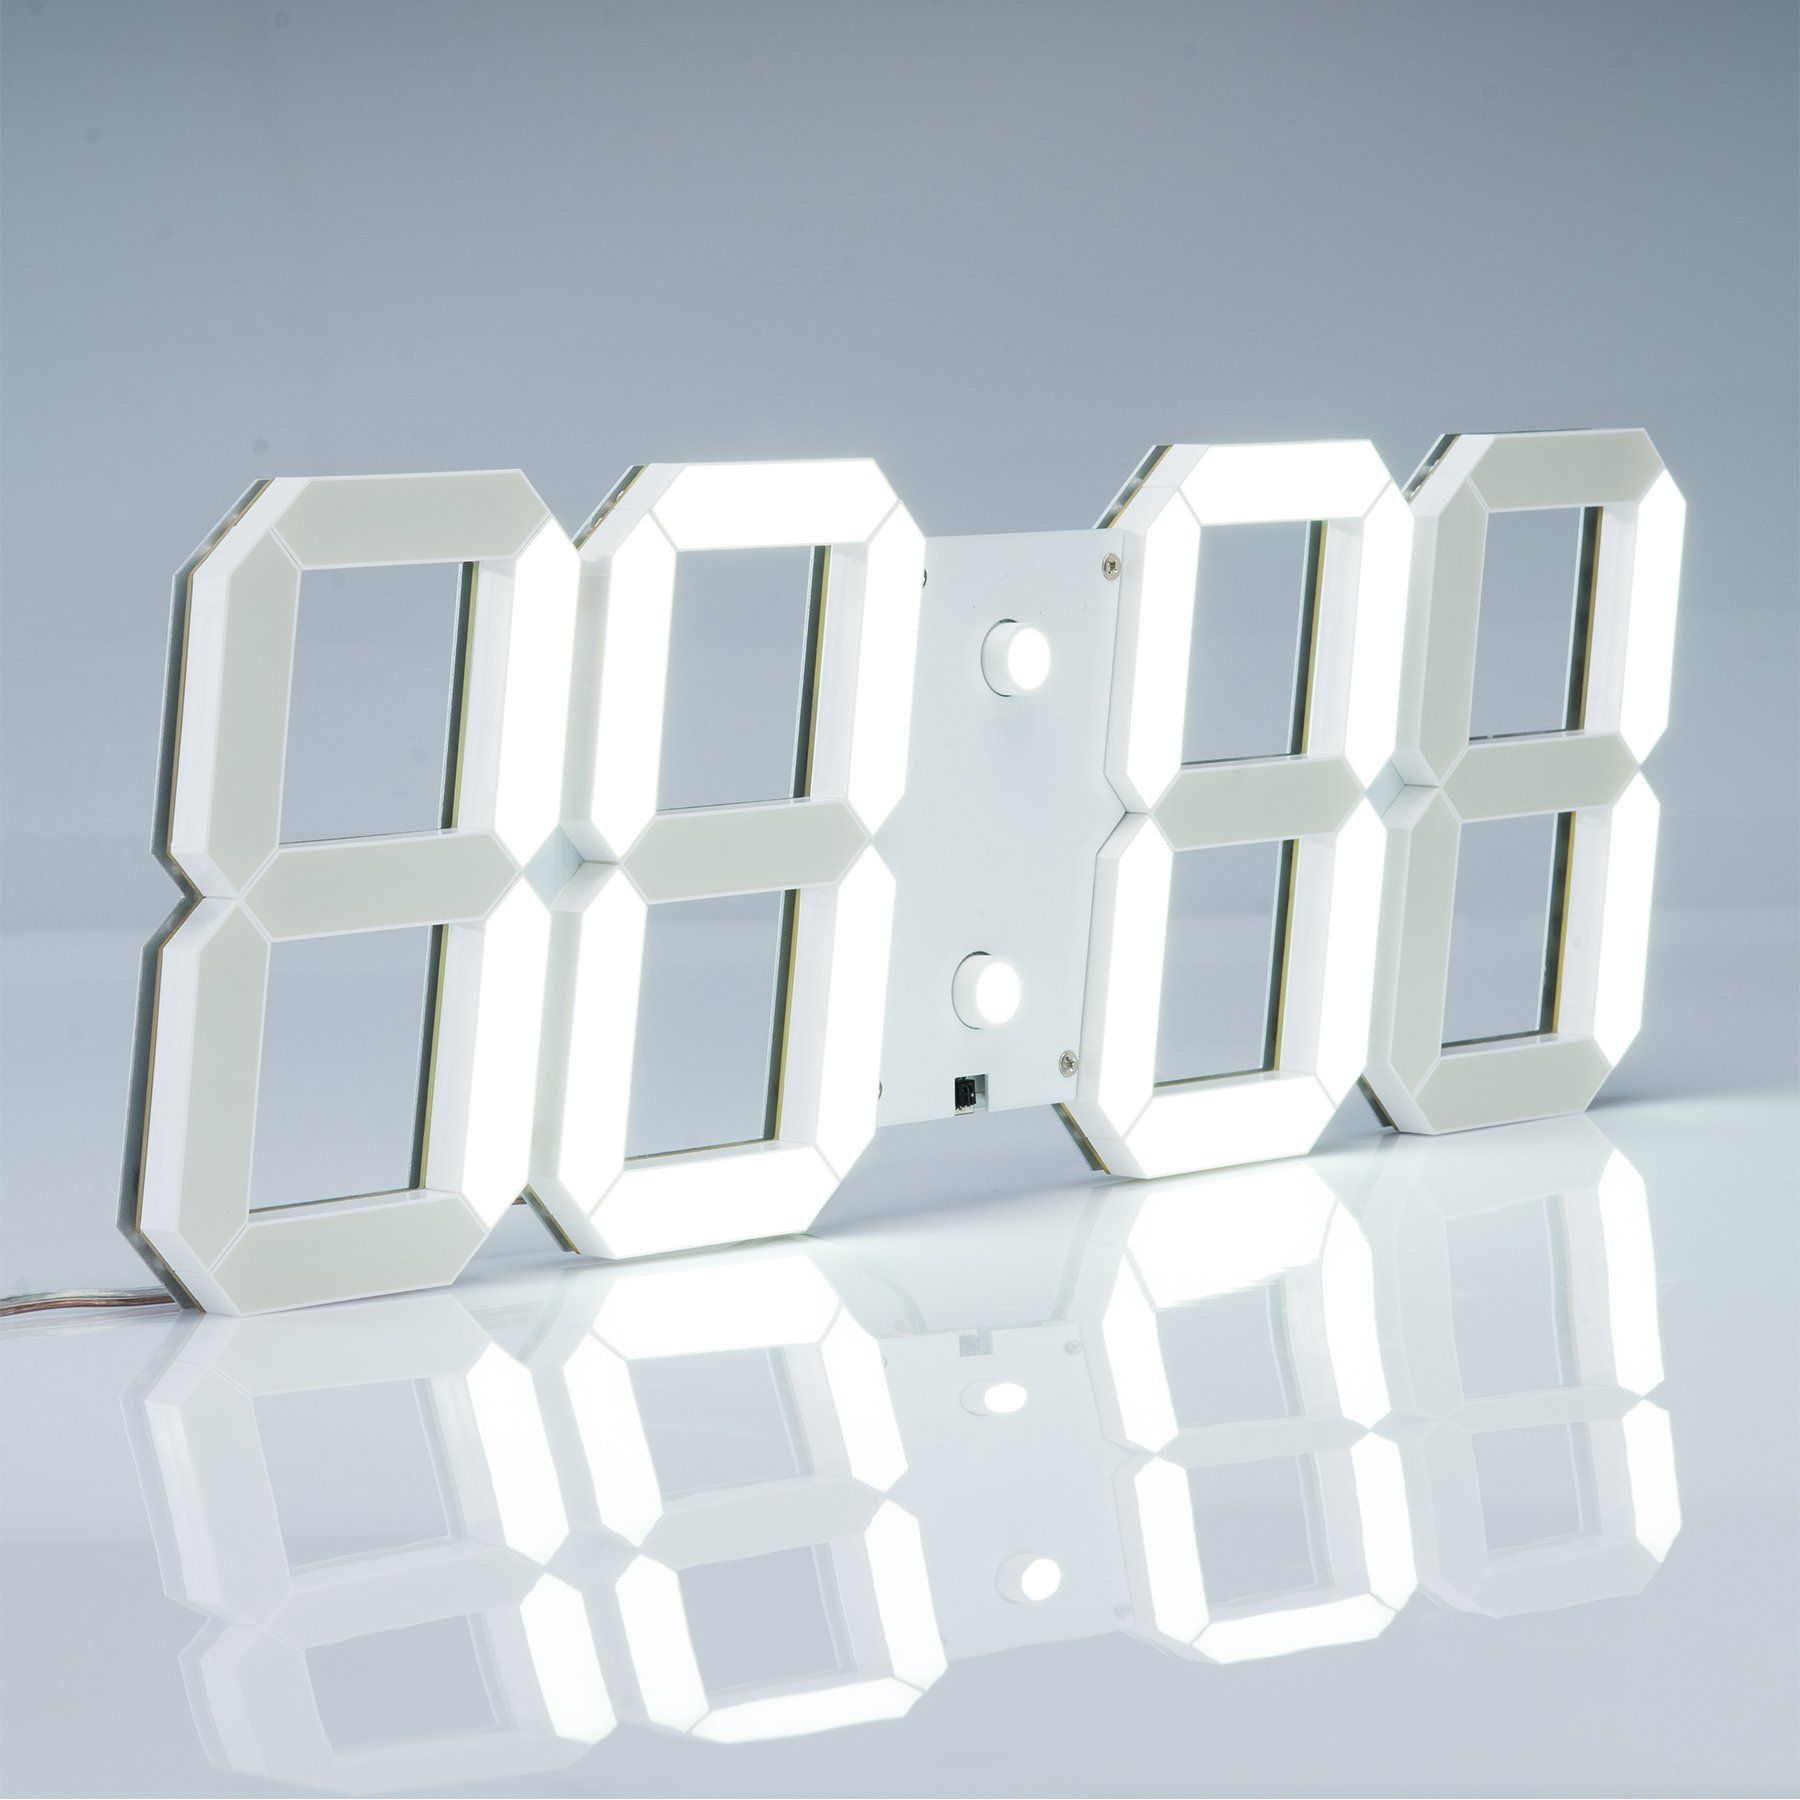 Pinty Upgraded Multi Purpose Large Led Digital Wall Clock With Alarm